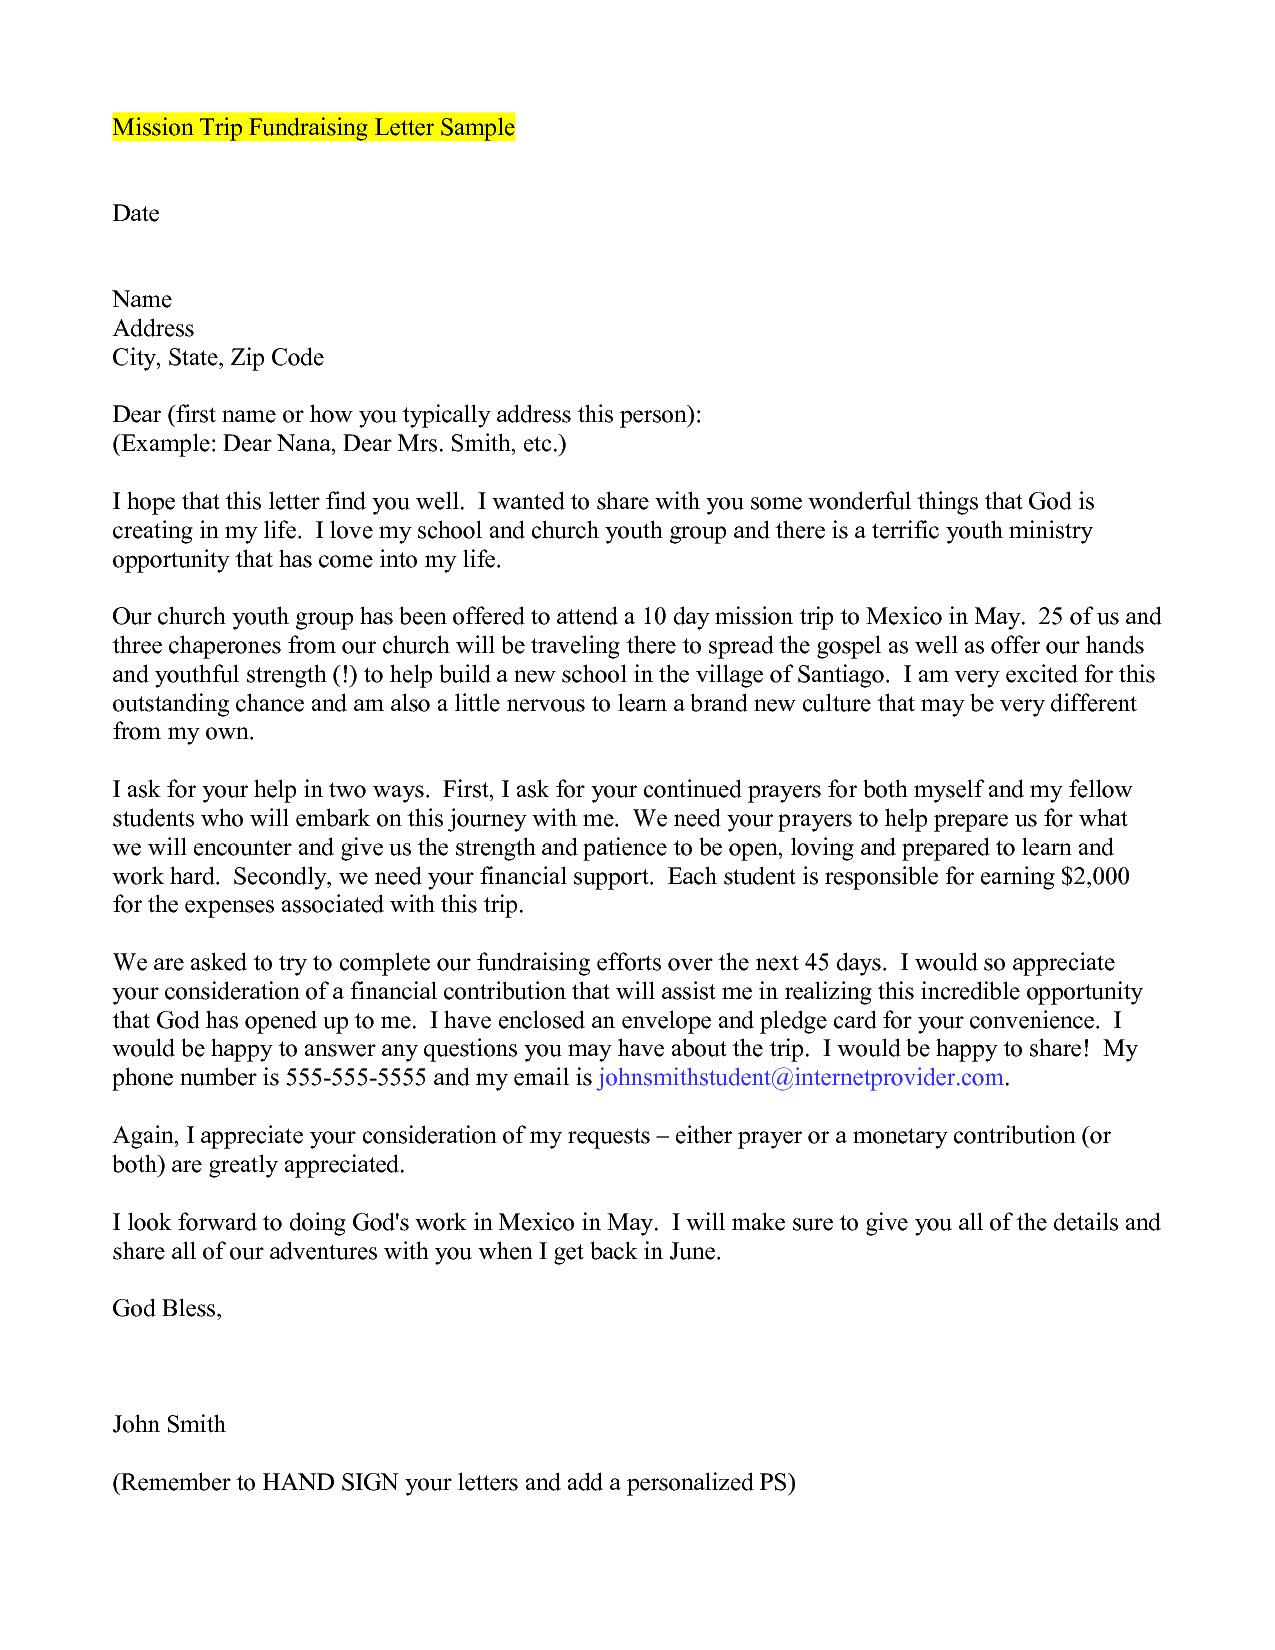 Donation Letter Template For Mission Trip